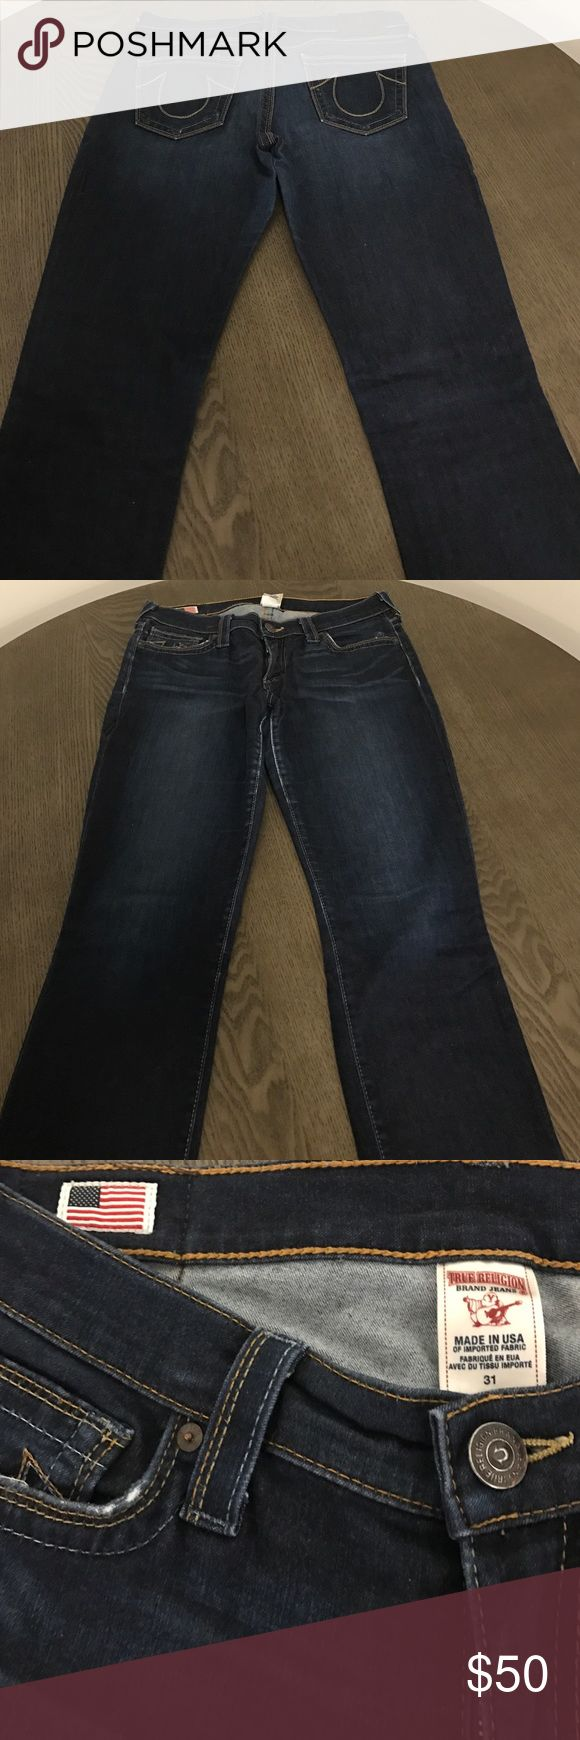 """True Religion Women's Sz 31 slim fit Jeans True Religion women's slim fit Sz 31 denim. Previously worn but they no longer fit. Well taken care of and from a smoke free and pet free home. I am 5'11"""" and they fit perfect length wise. True Religion Jeans Straight Leg"""